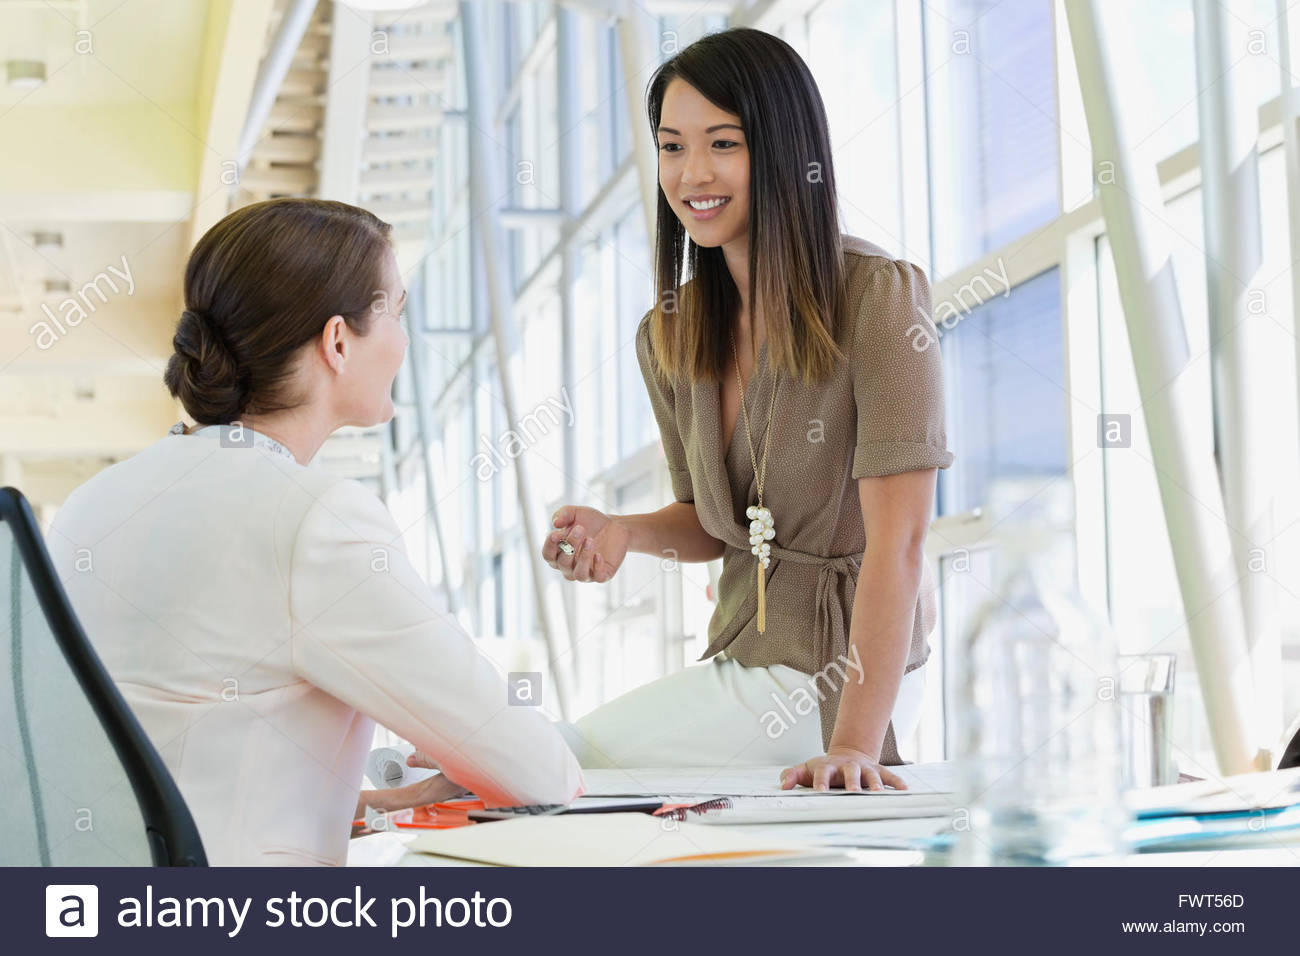 Female business colleagues talking over desk in conference room - Stock Image